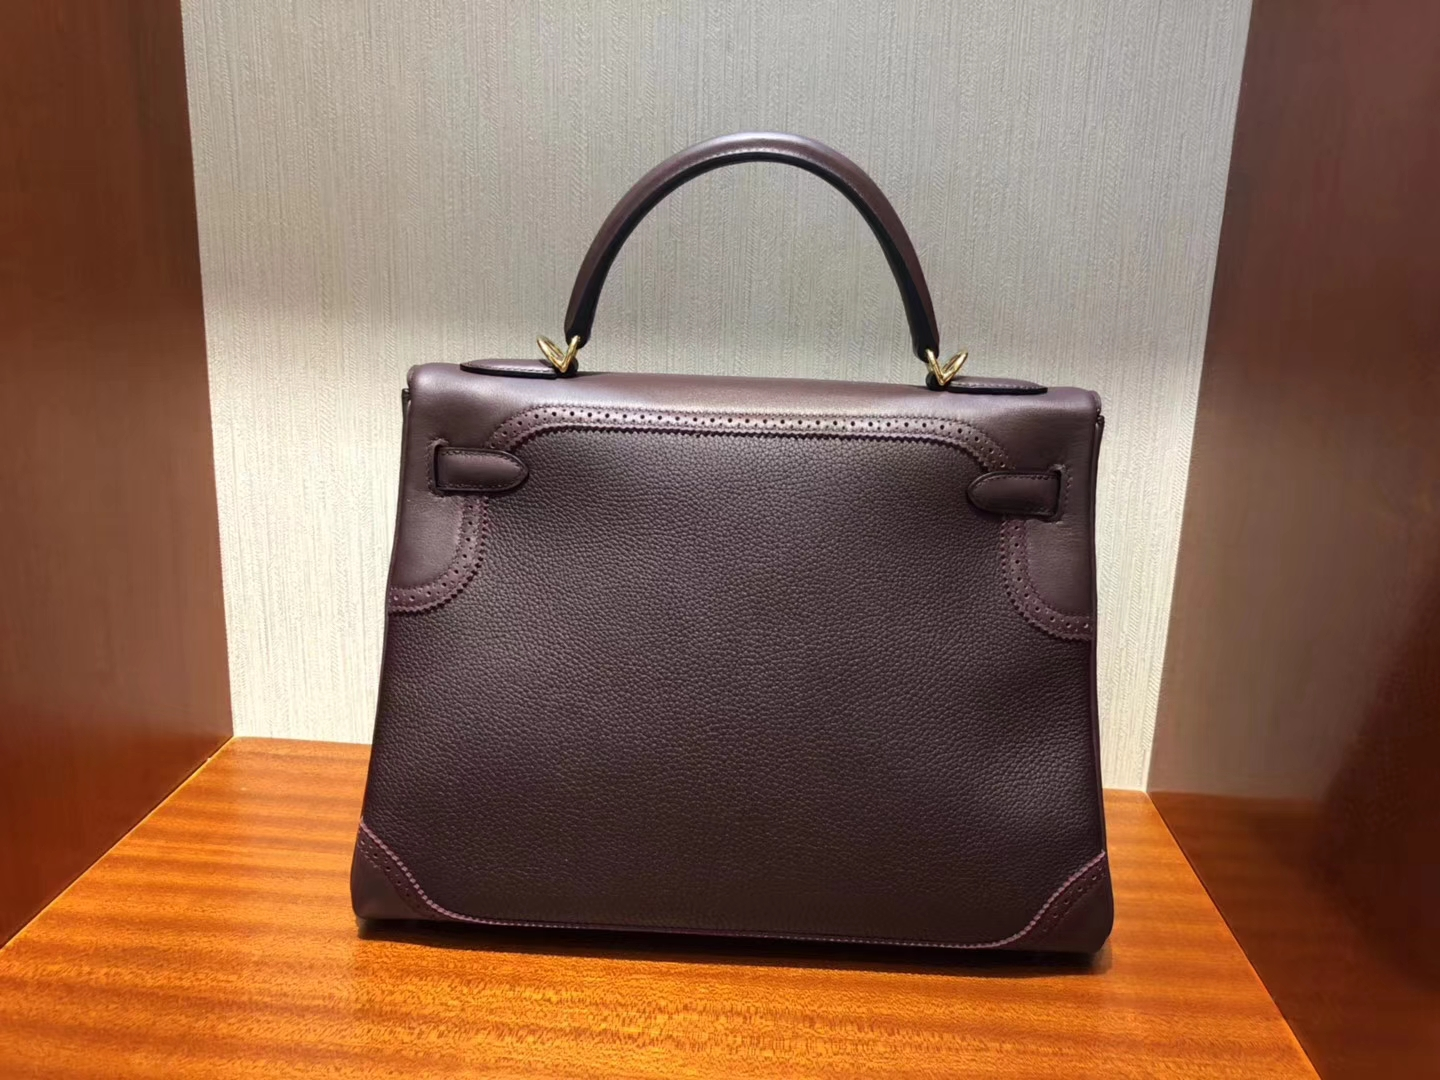 Fashion Hermes CK57 Bordeaux Red Togo Calf Ghillies Kelly Bag28CM Gold Hardware